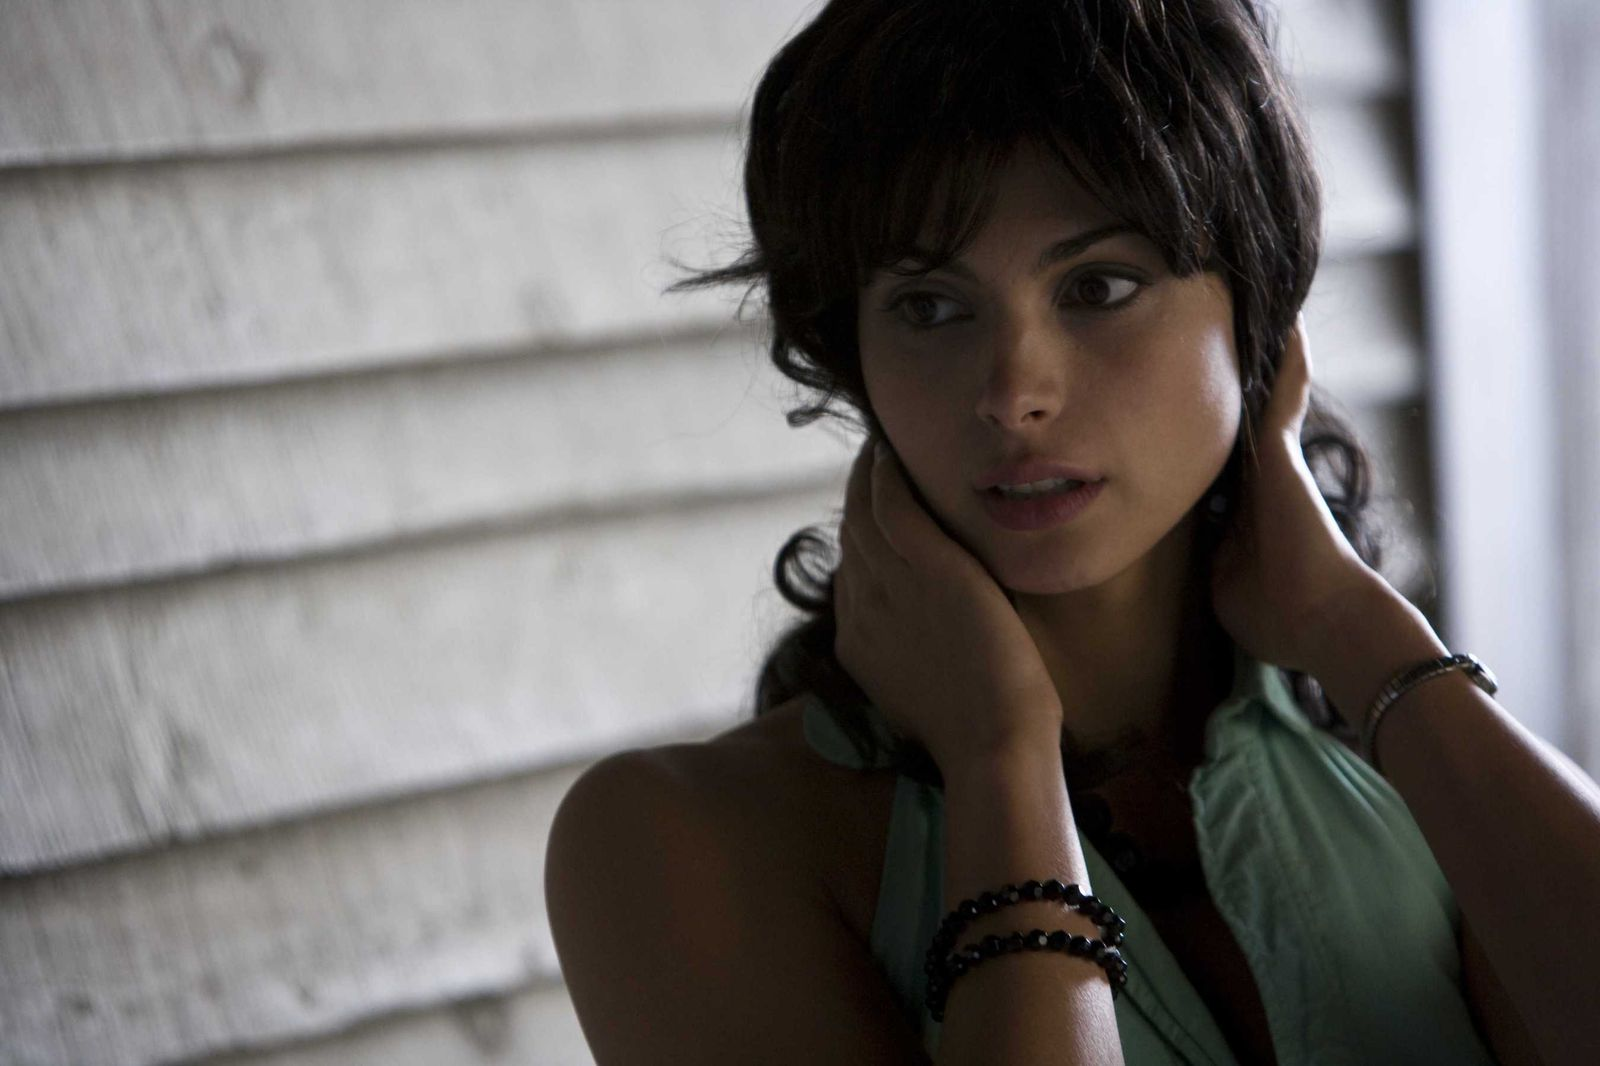 Hollywood Celebrities: Morena Baccarin Photos